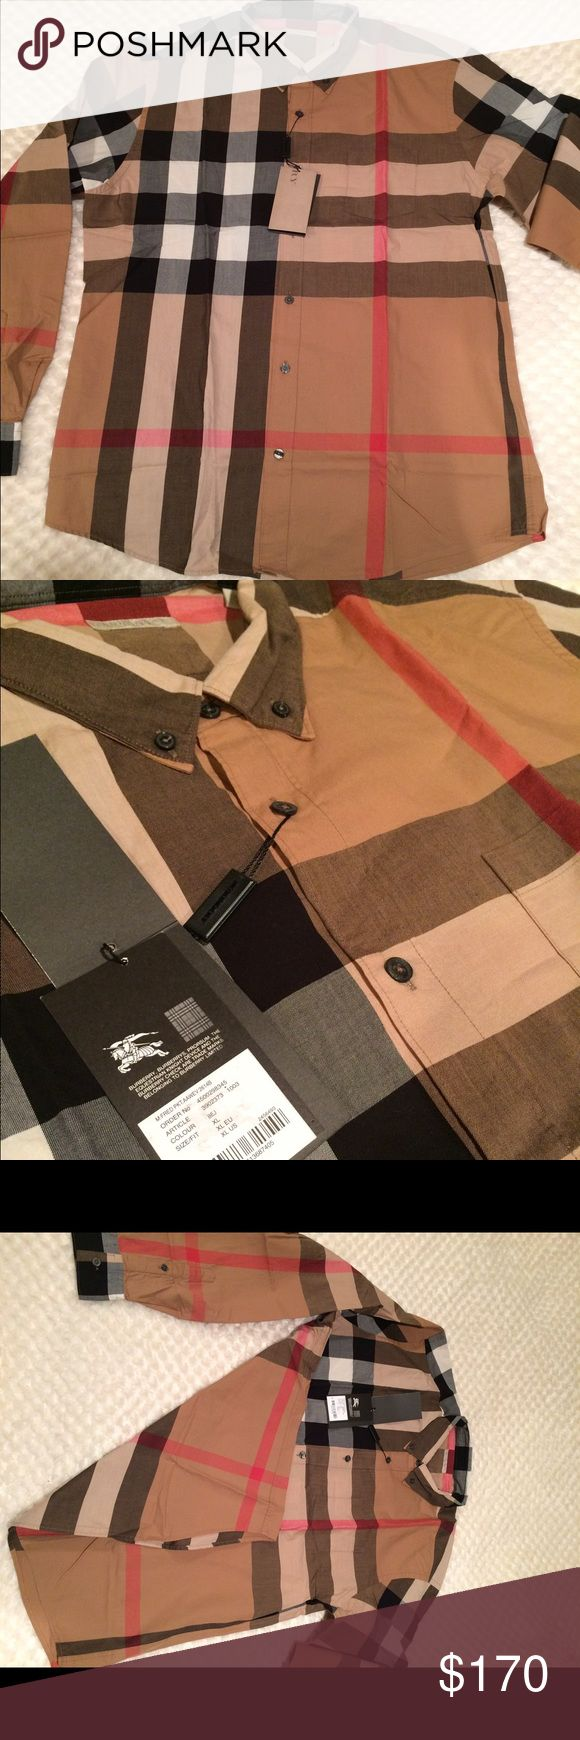 New burberry shirt for men New with tags burberry shirt  long sleeves 100% cotton Burberry Tops Button Down Shirts